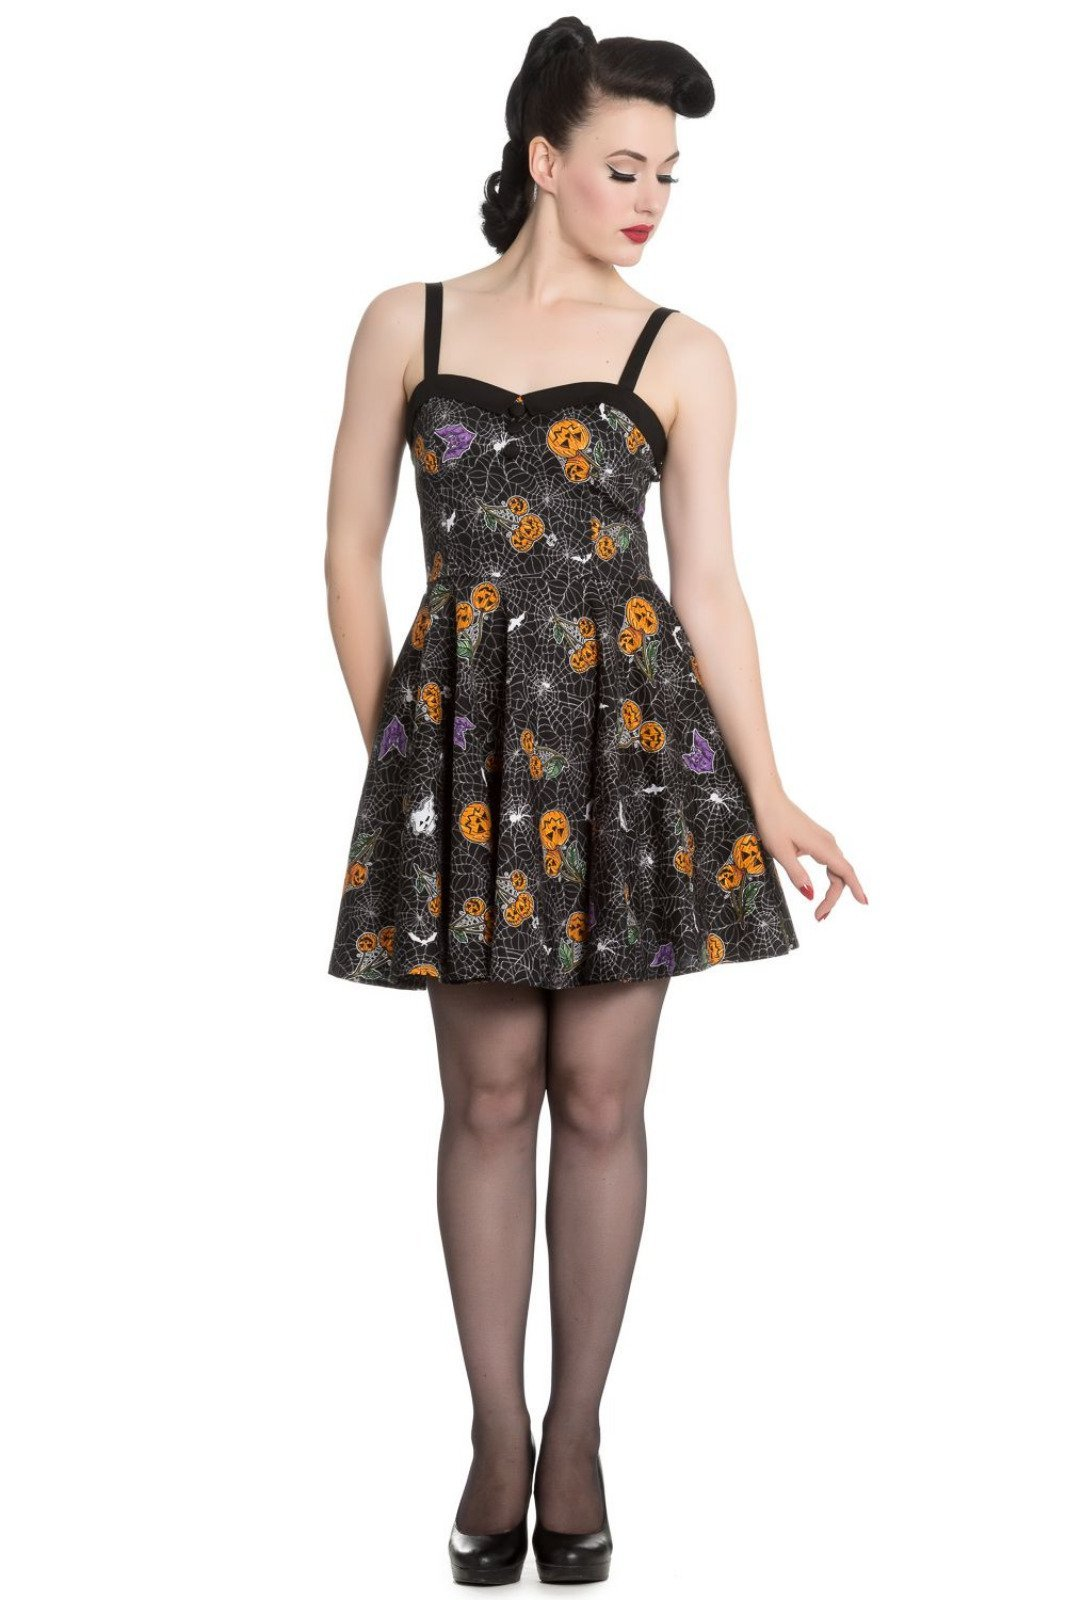 Hell Bunny Harlow Mini Dress - Bohemian Finds